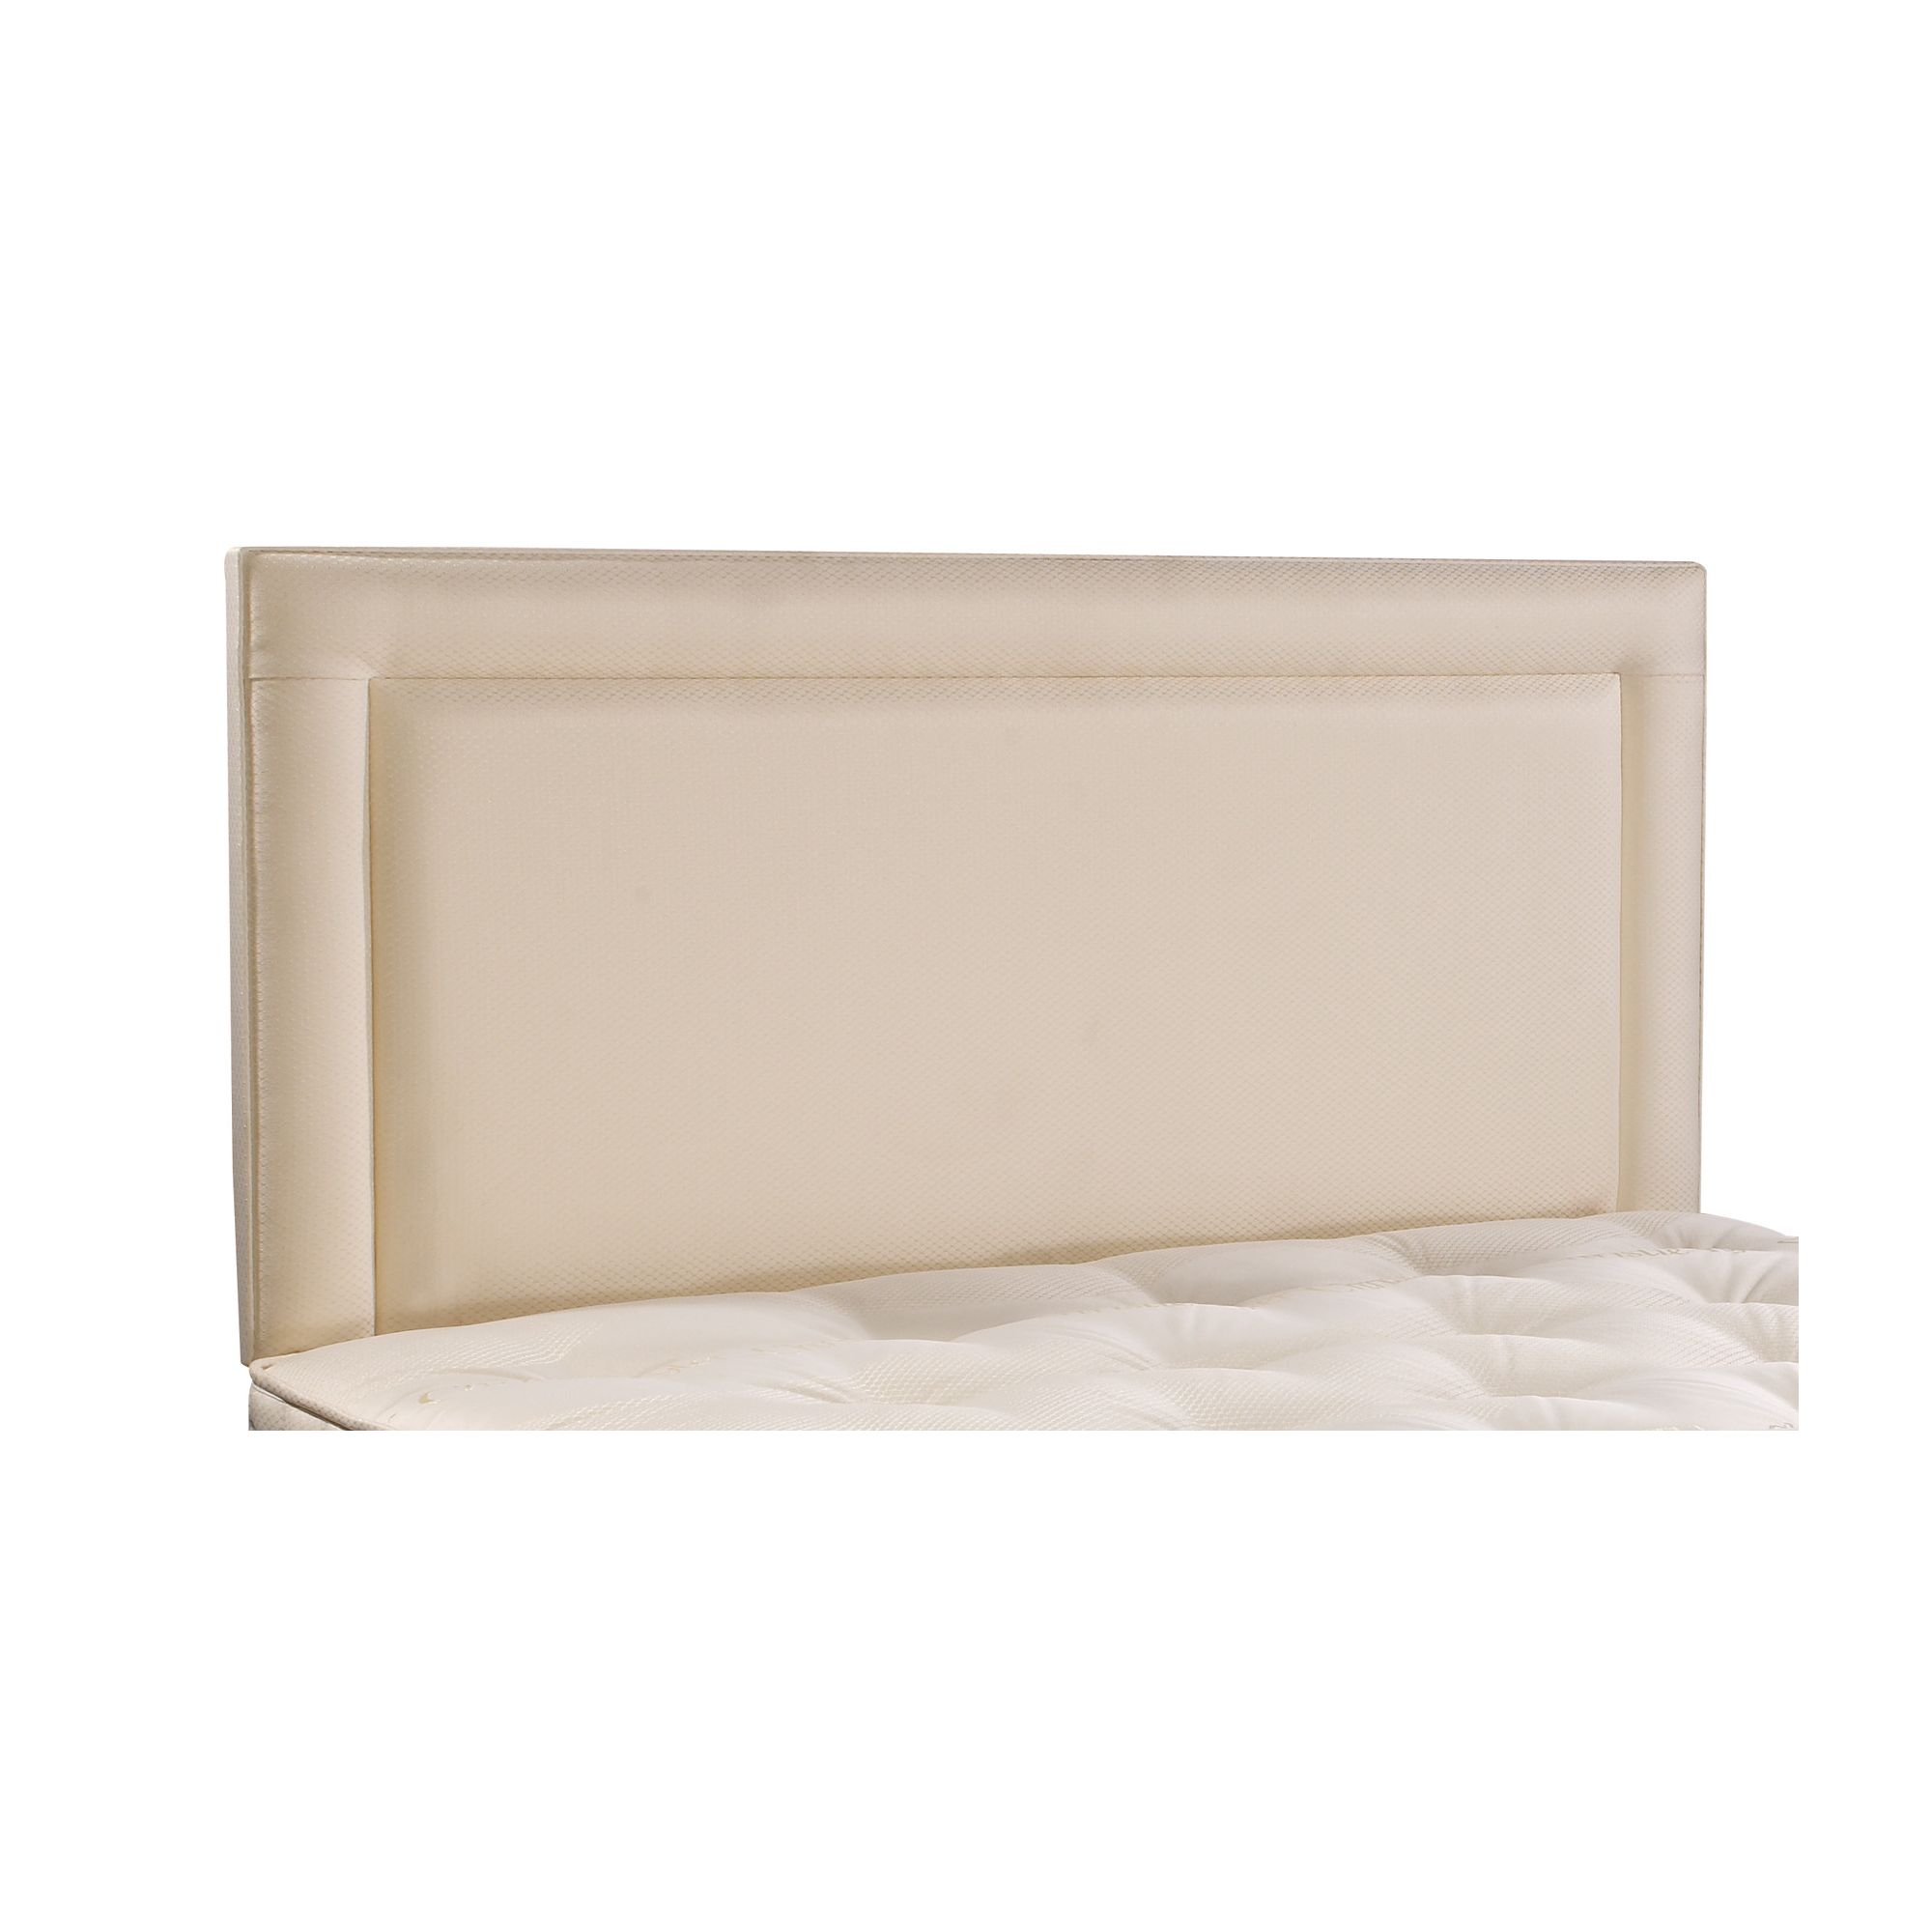 Christie-Tyler Classic Ortho 1000 Headboard - Super King at Tesco Direct